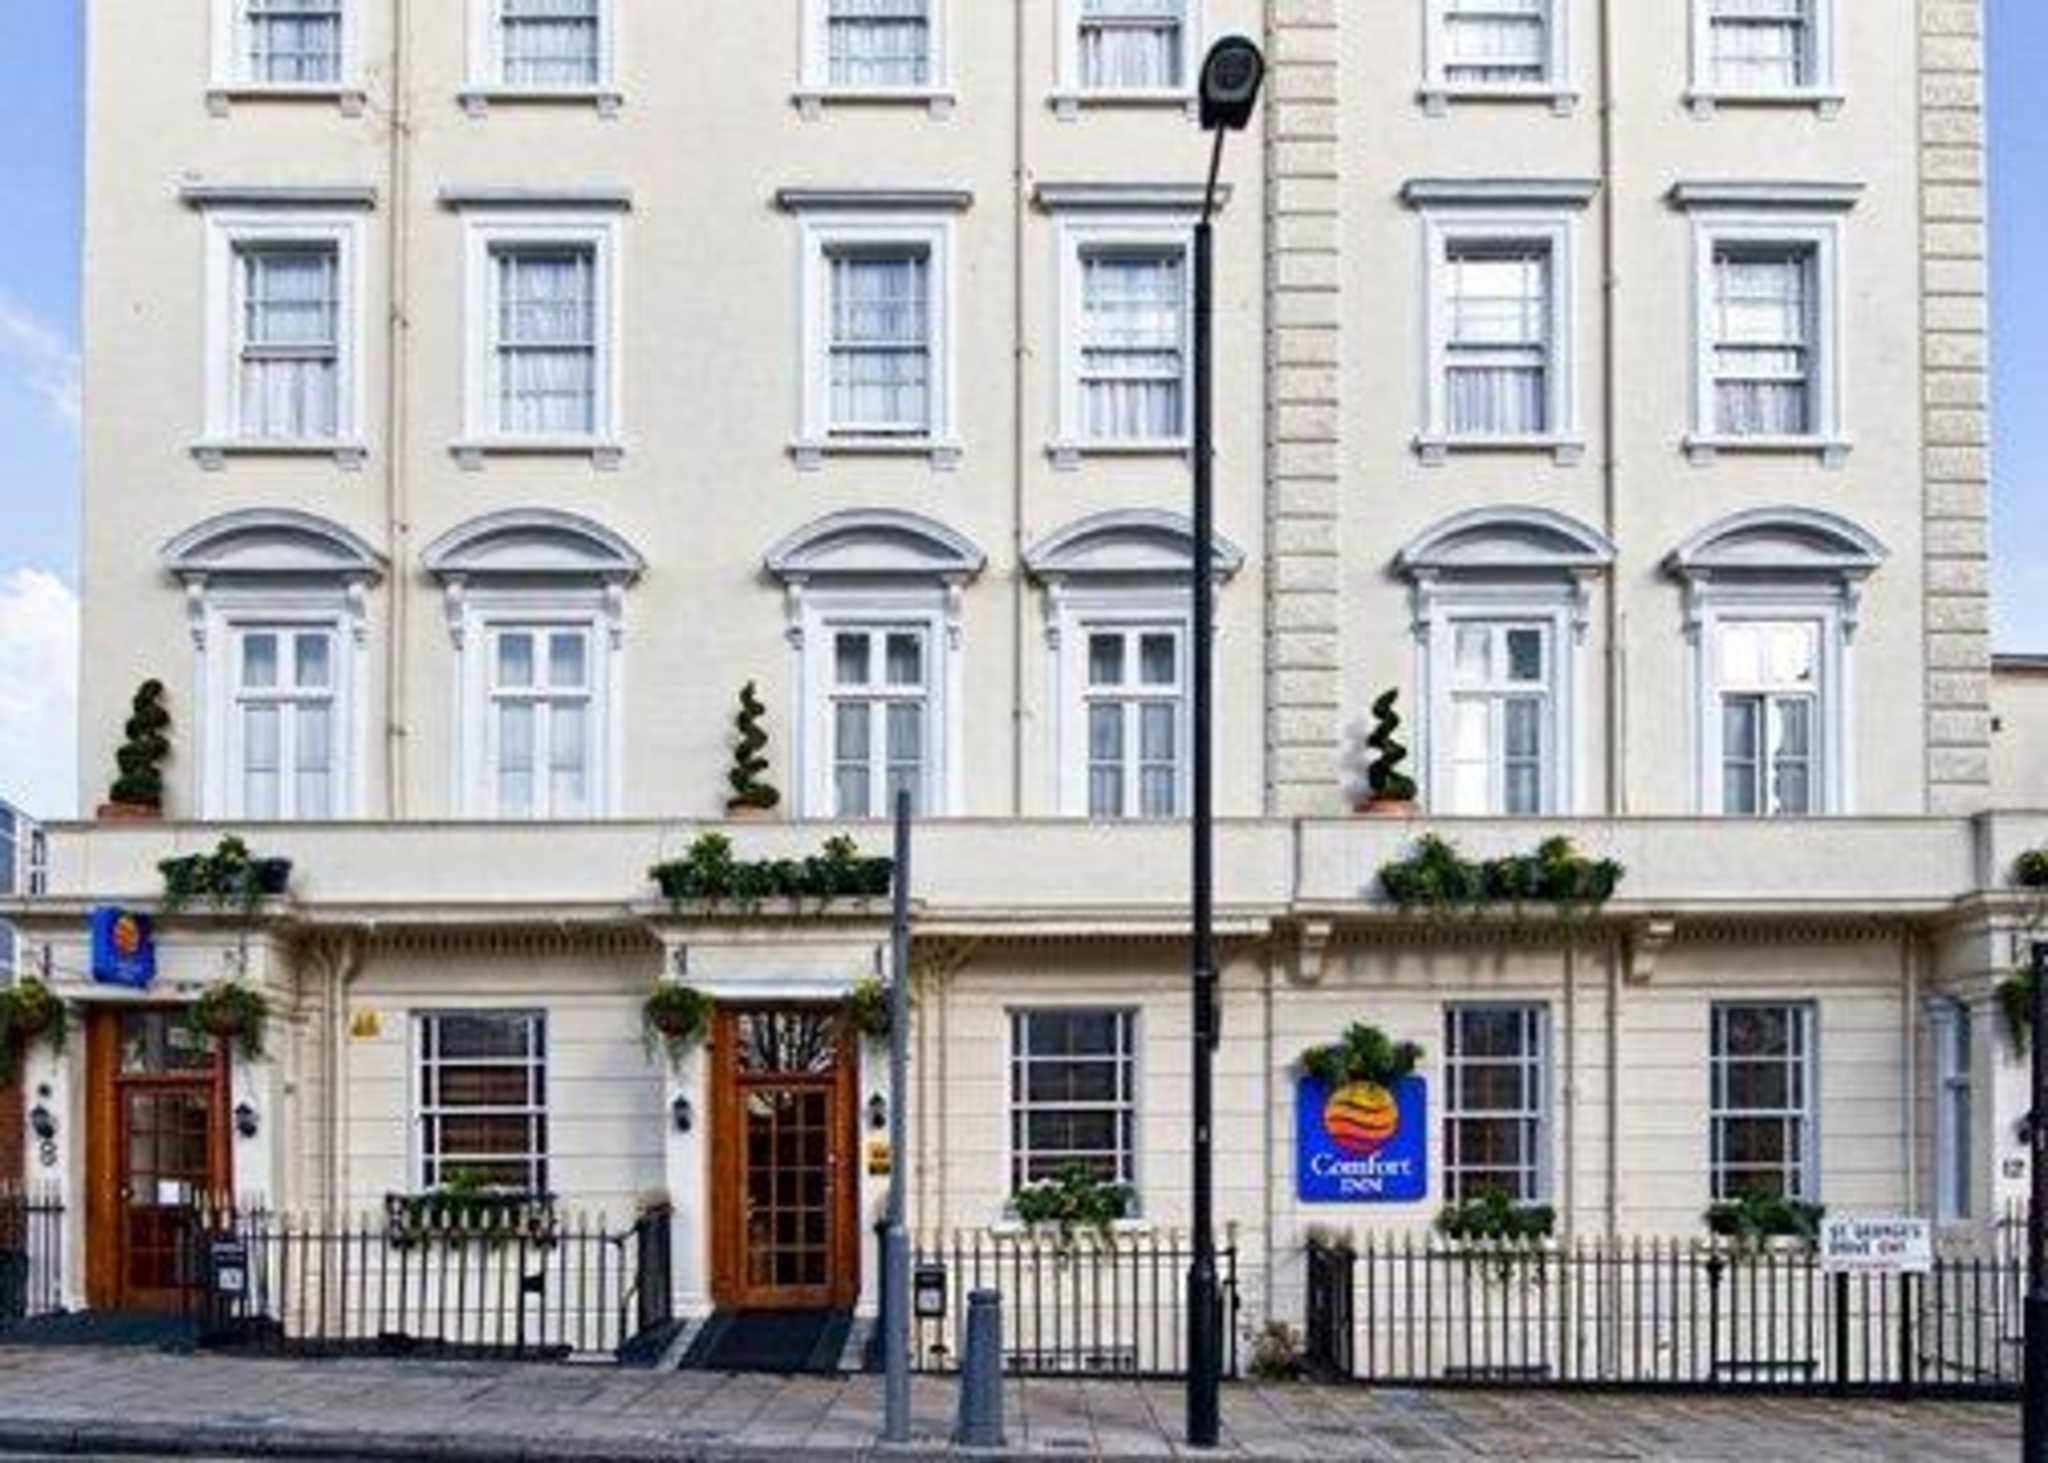 Comfort Inn Buckingham Palace Road - Closed - London, London SW1V 4BJ - 020 7834 2988 | ShowMeLocal.com